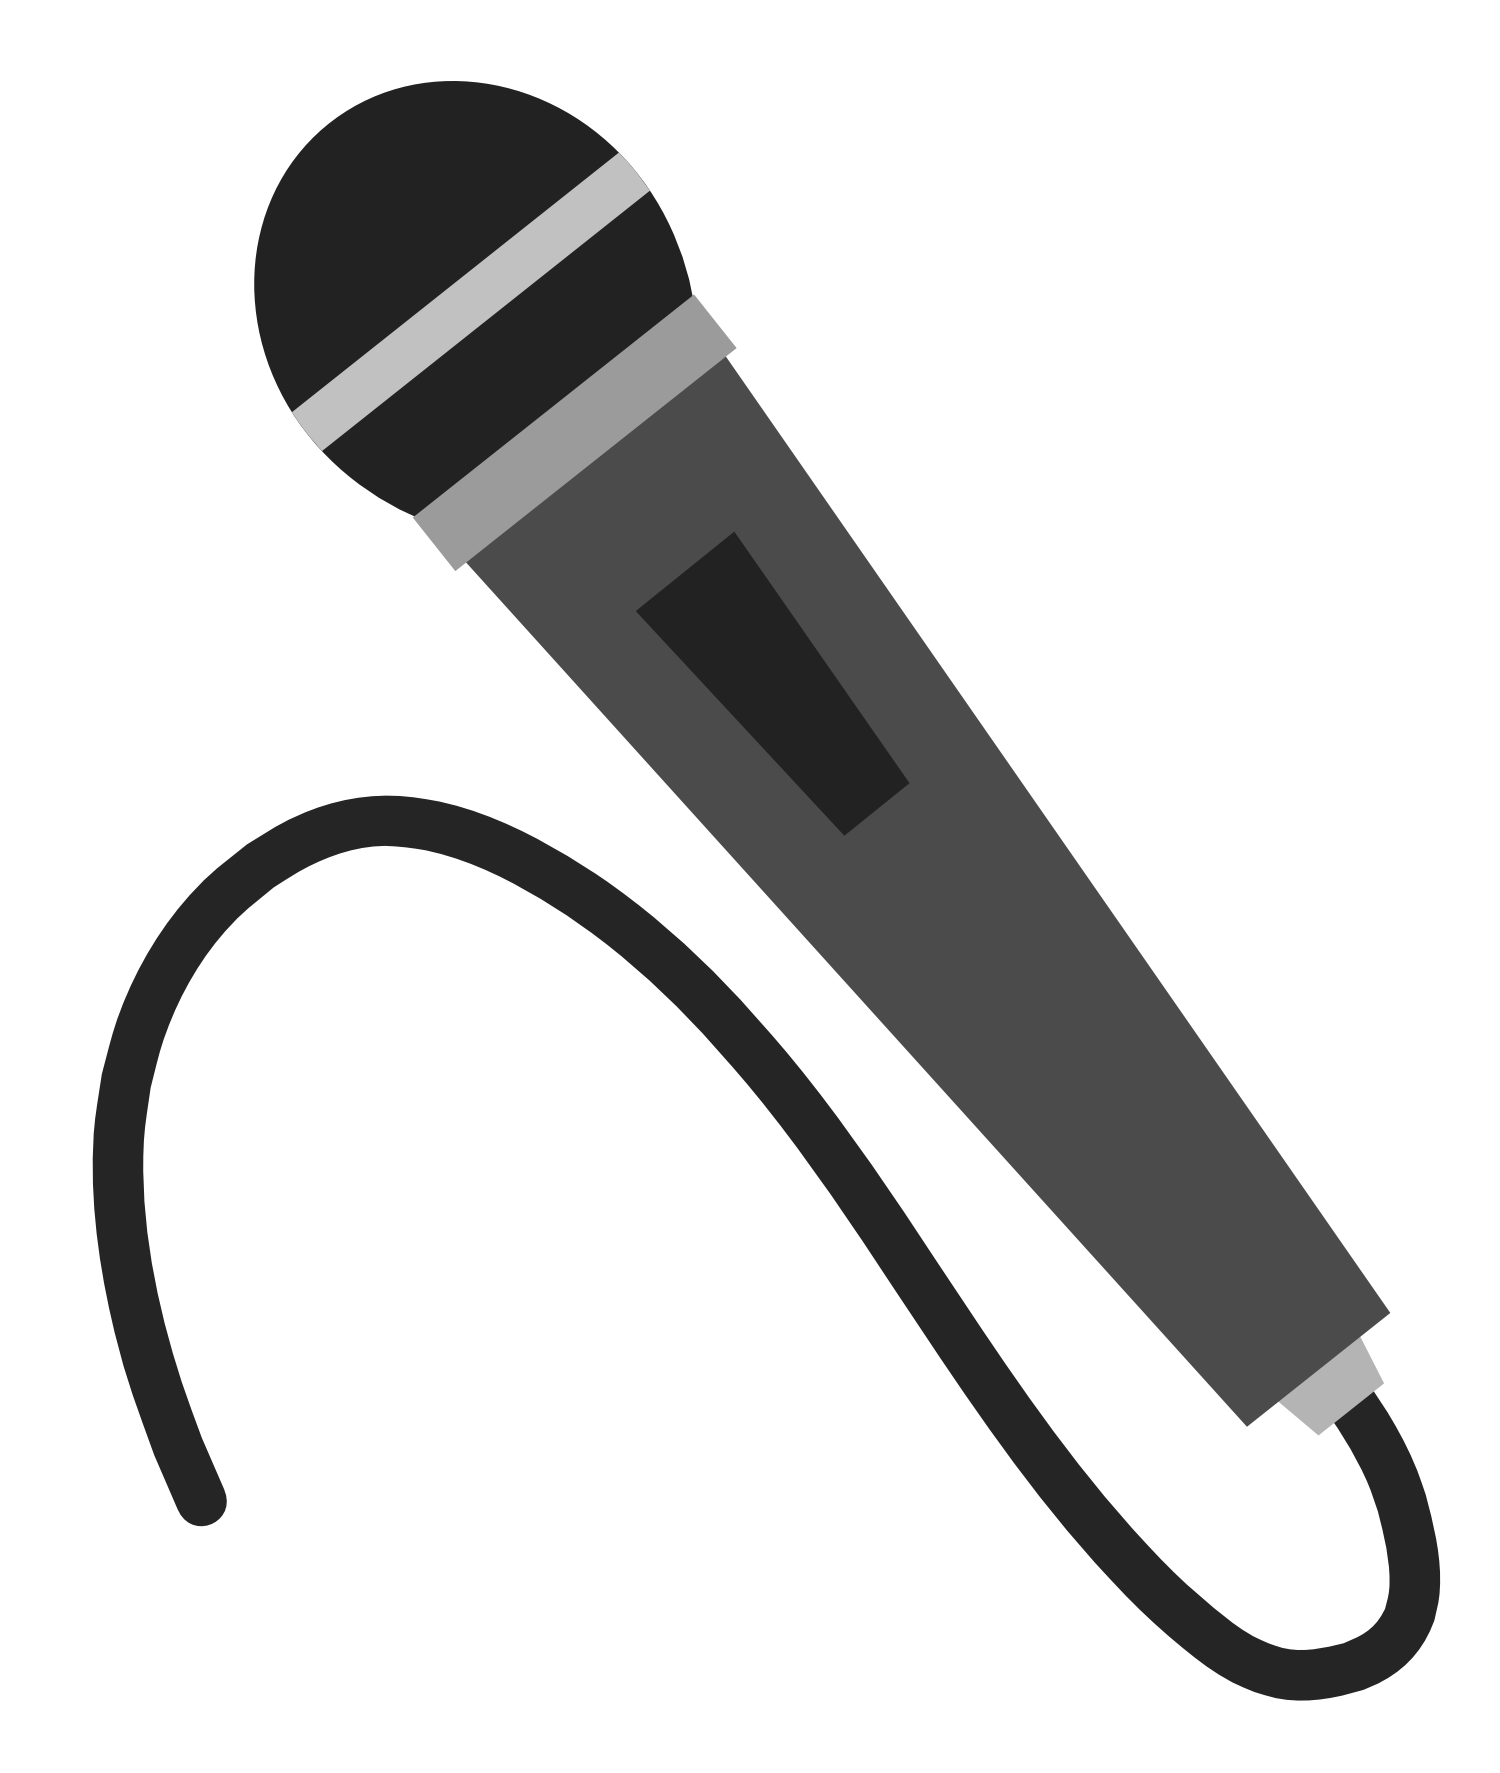 Radio Microphone Vector And Free Download The Graphic Cave Clipart Image 11479 Free Clip Art Clip Art Microphone Images